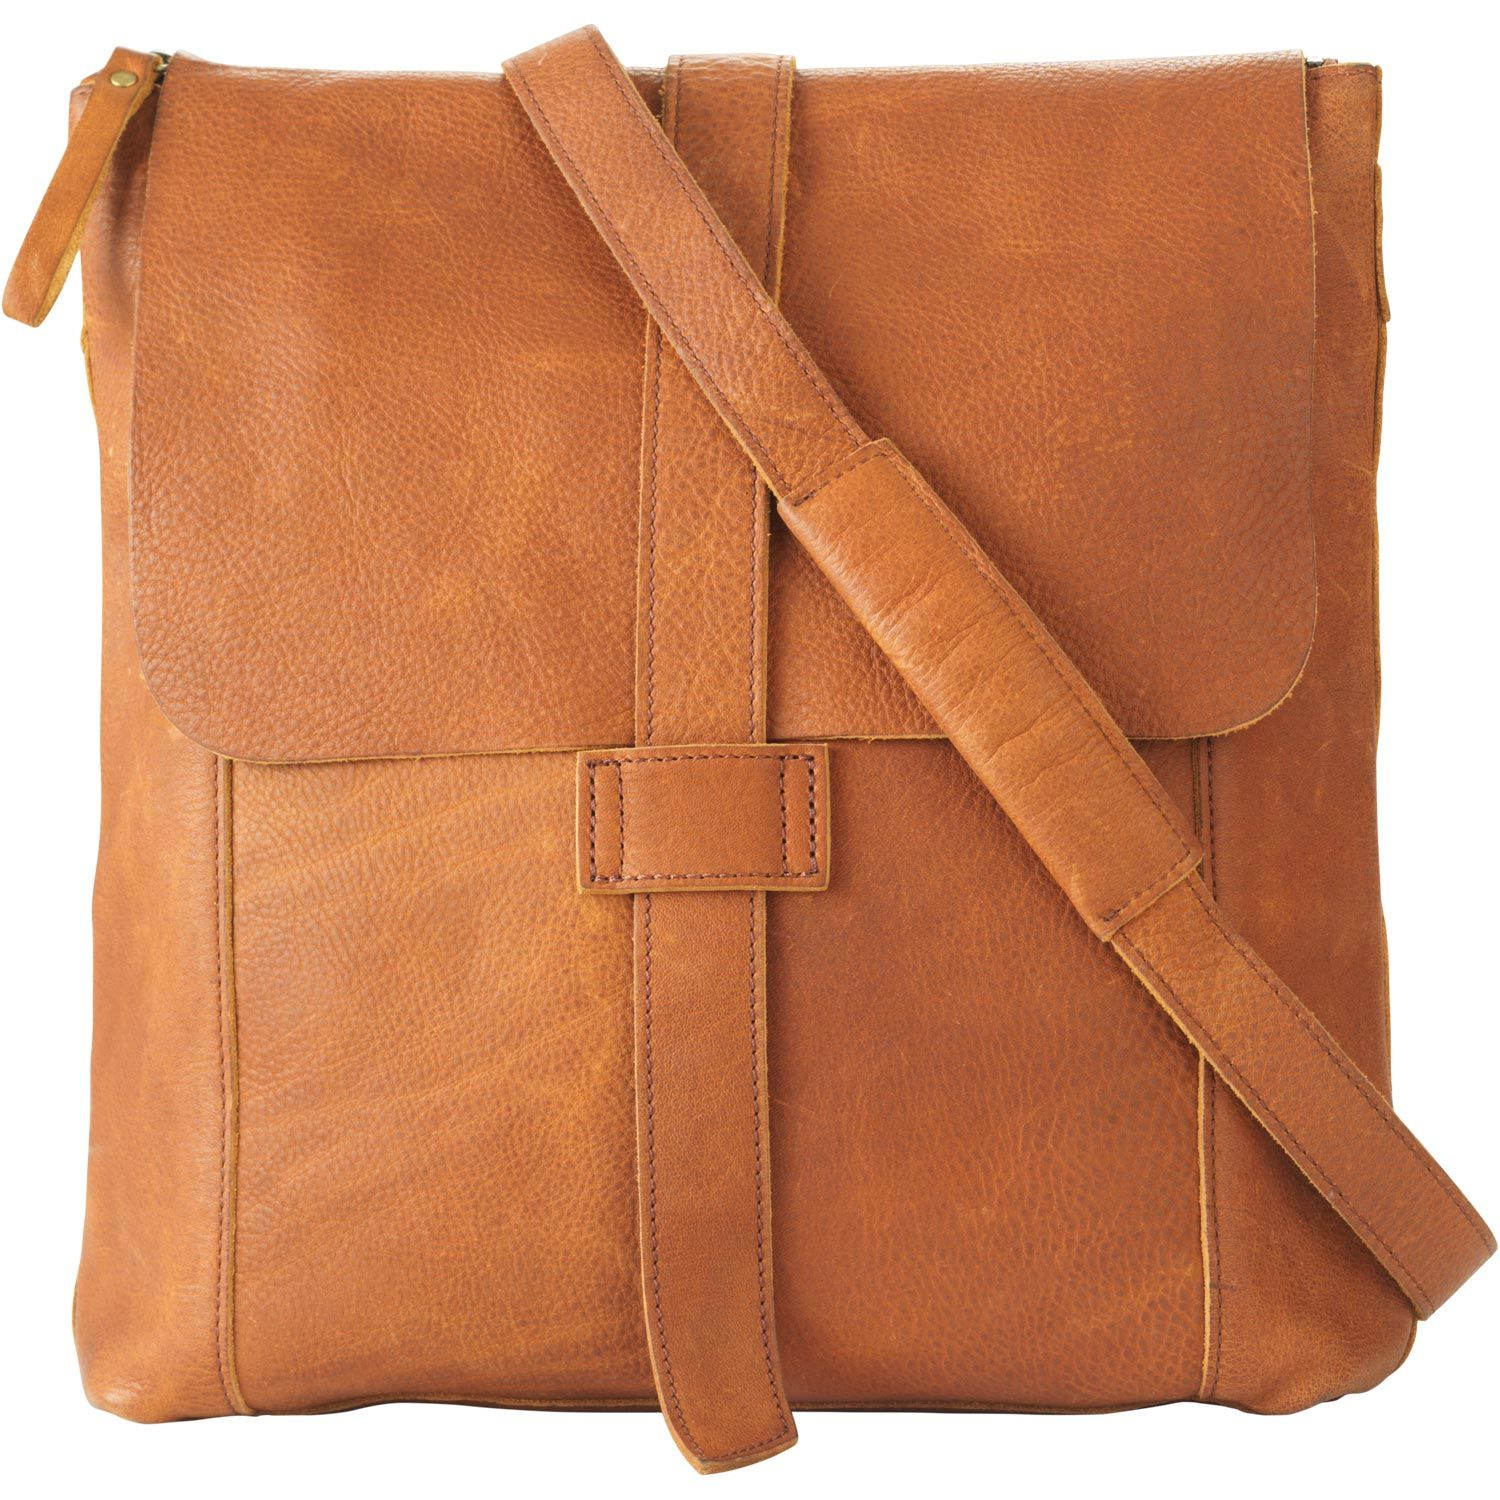 Women's Lifetime Leather Messenger Bag | Duluth Trading Company